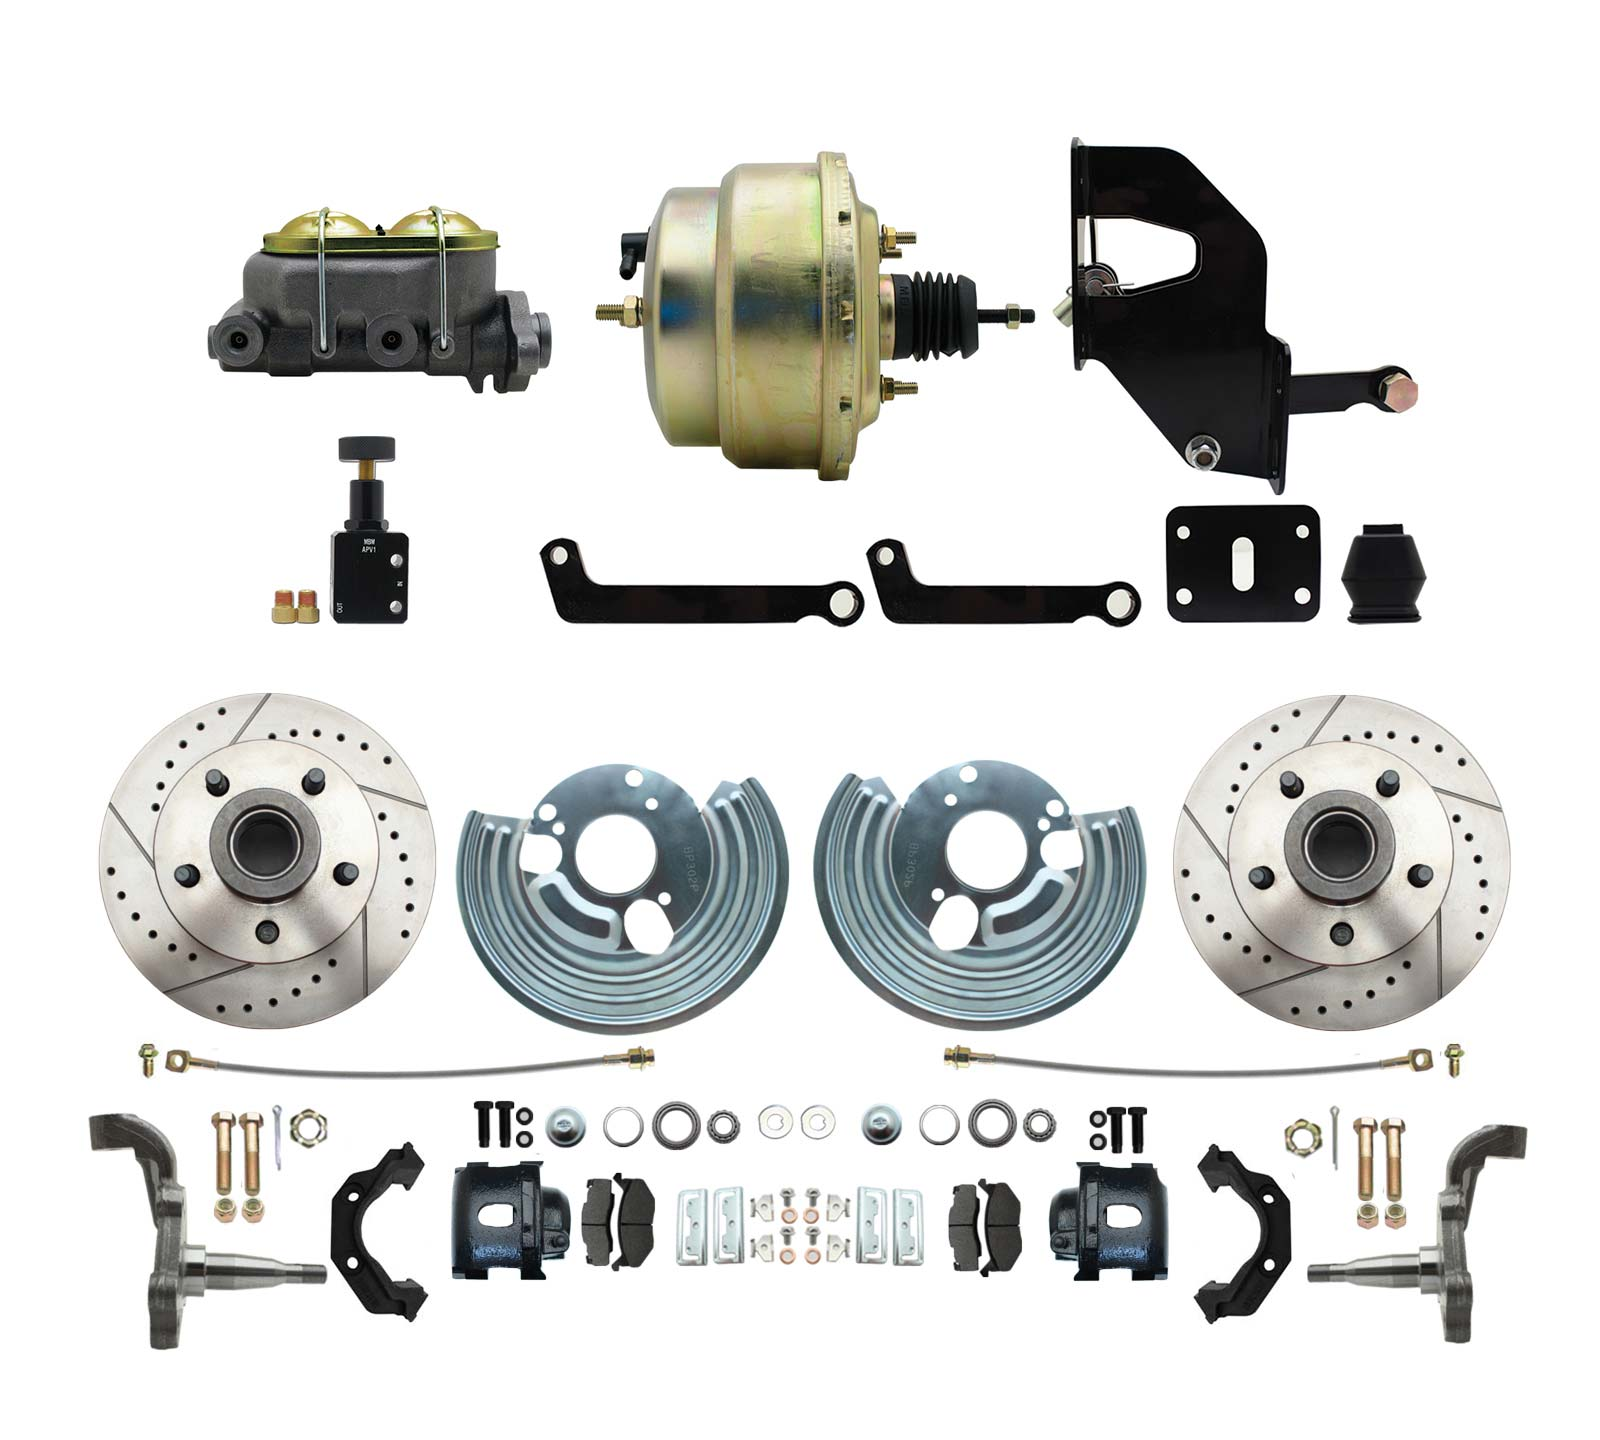 1962-72 Mopar B&E Body  Front  Disc Brake Conversion Kit W/ Drilled & Slotted Rotors & Powder Coated Black Calipers ( Charger, Challenger, Coronet) W/ 8 Dual Zinc Booster Conversion Kit W/ Adjustable Proportioning Valve